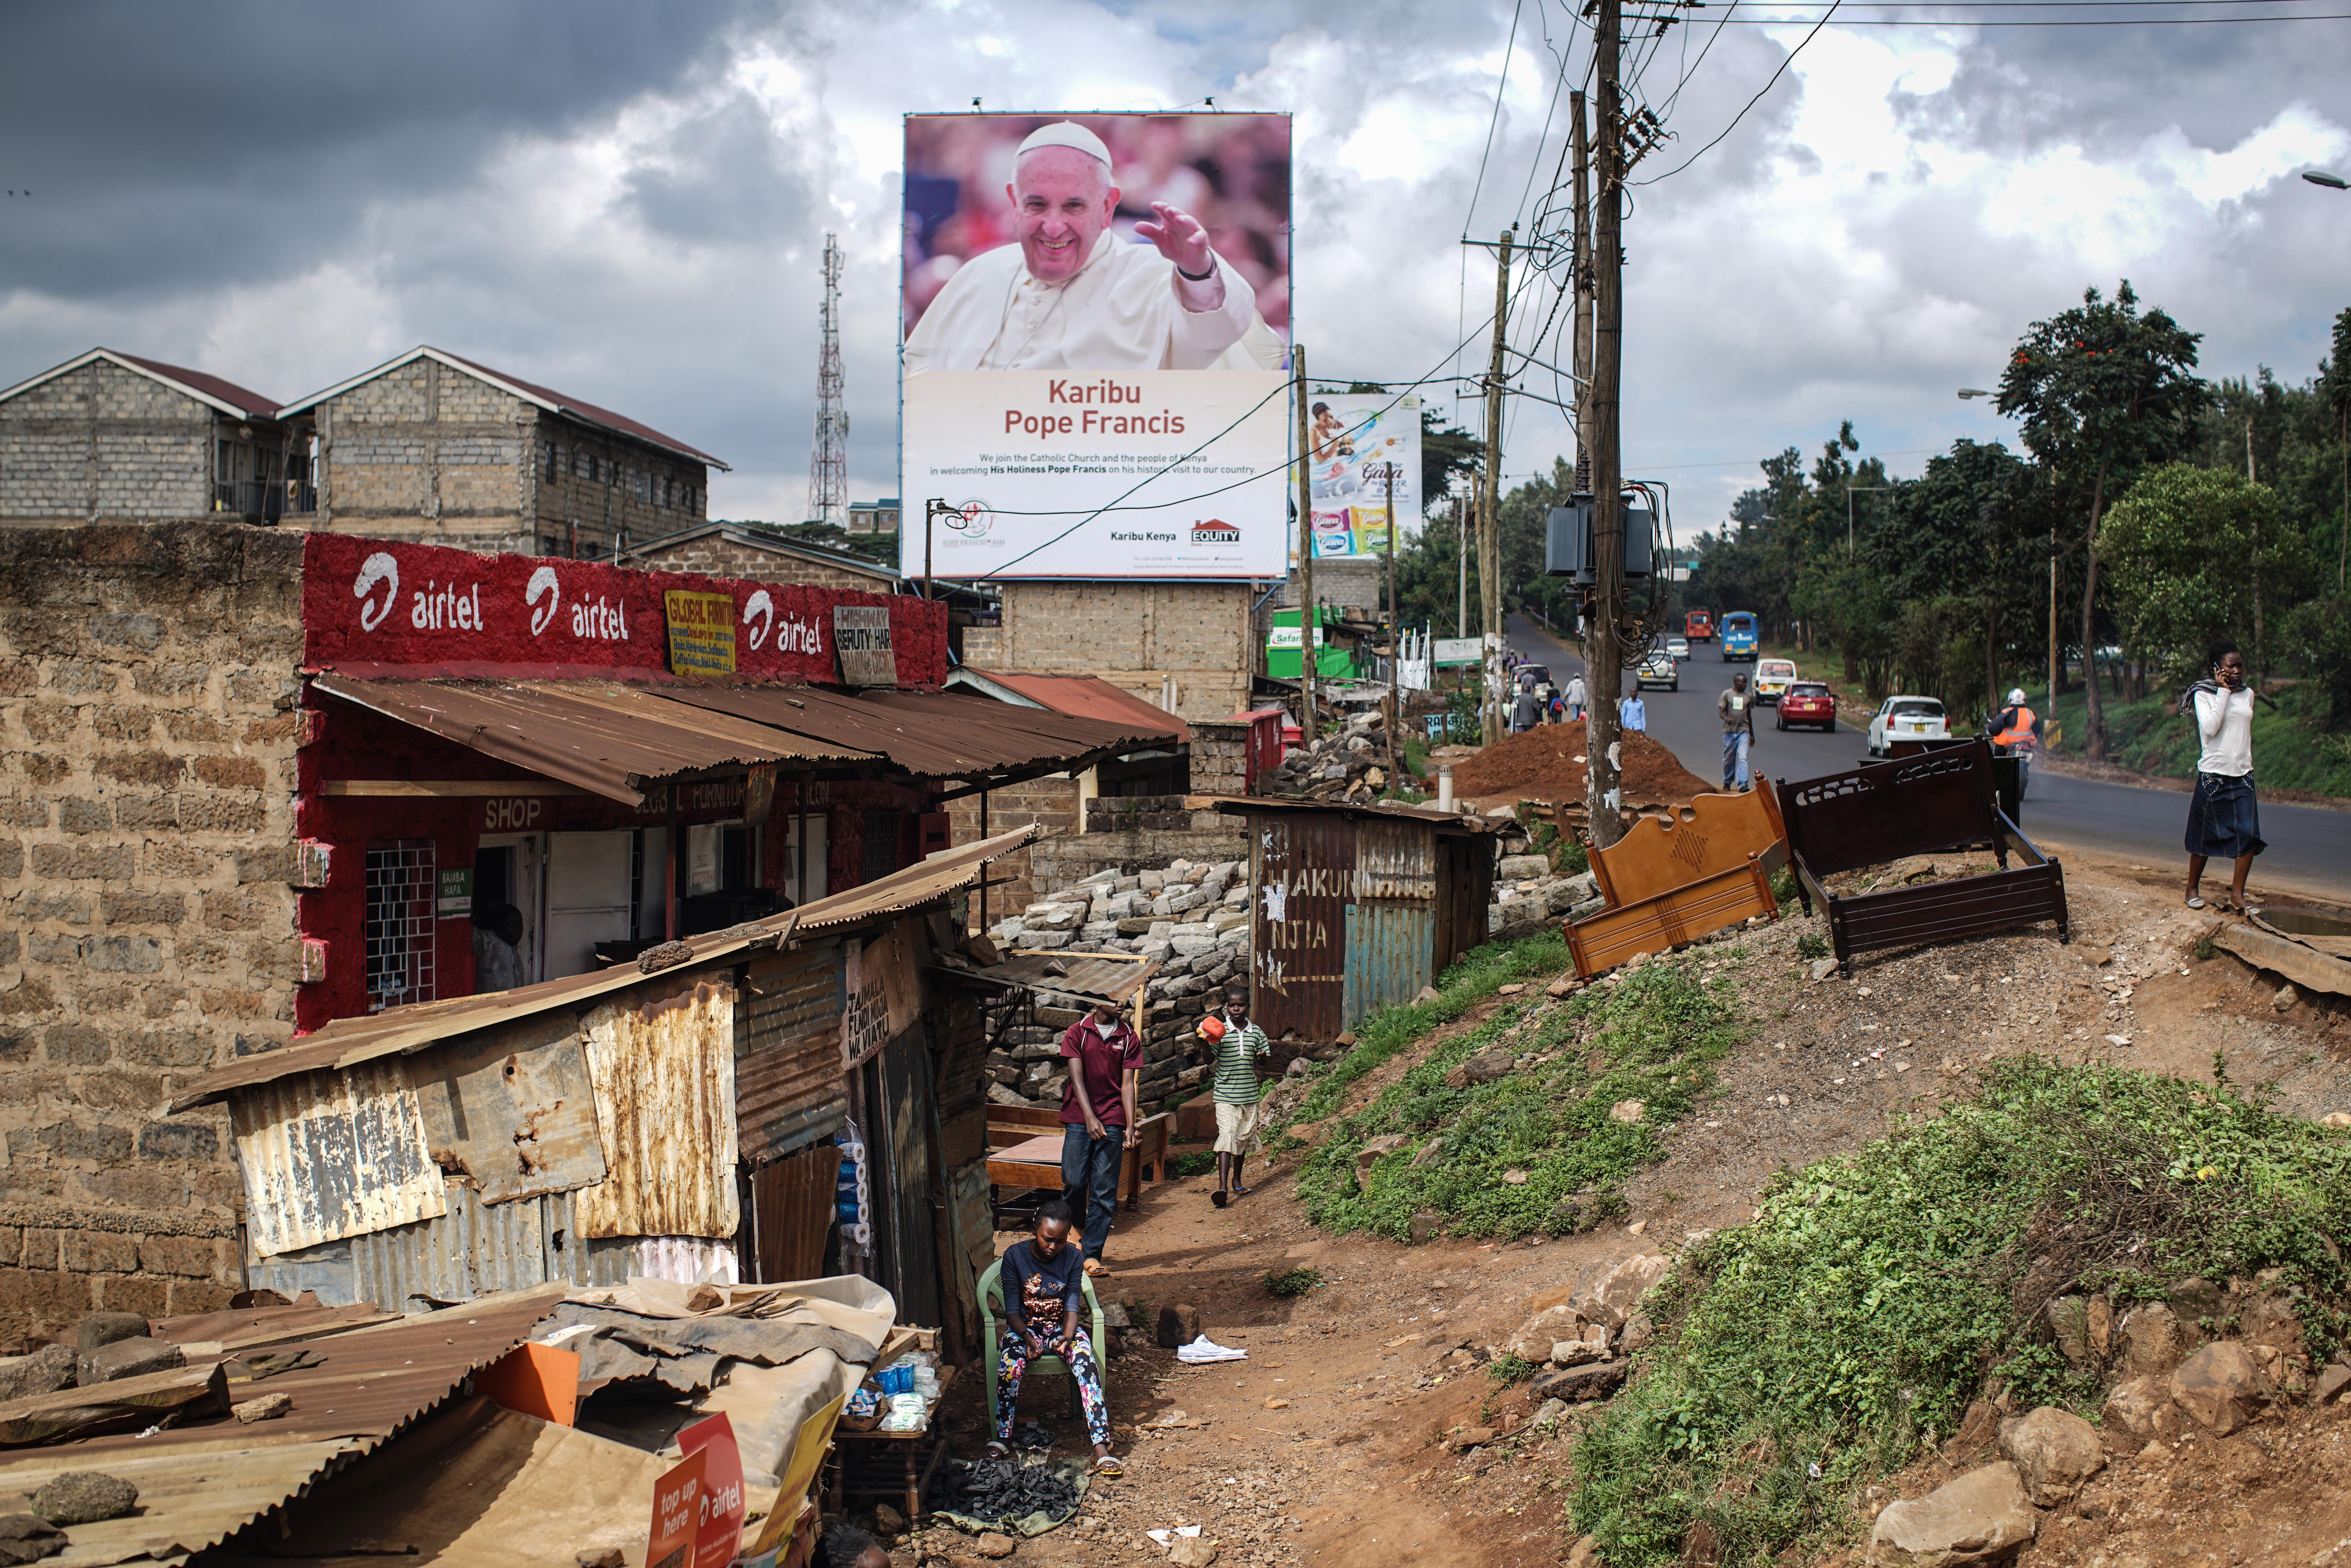 Pope Francis welcome poster in Kenya